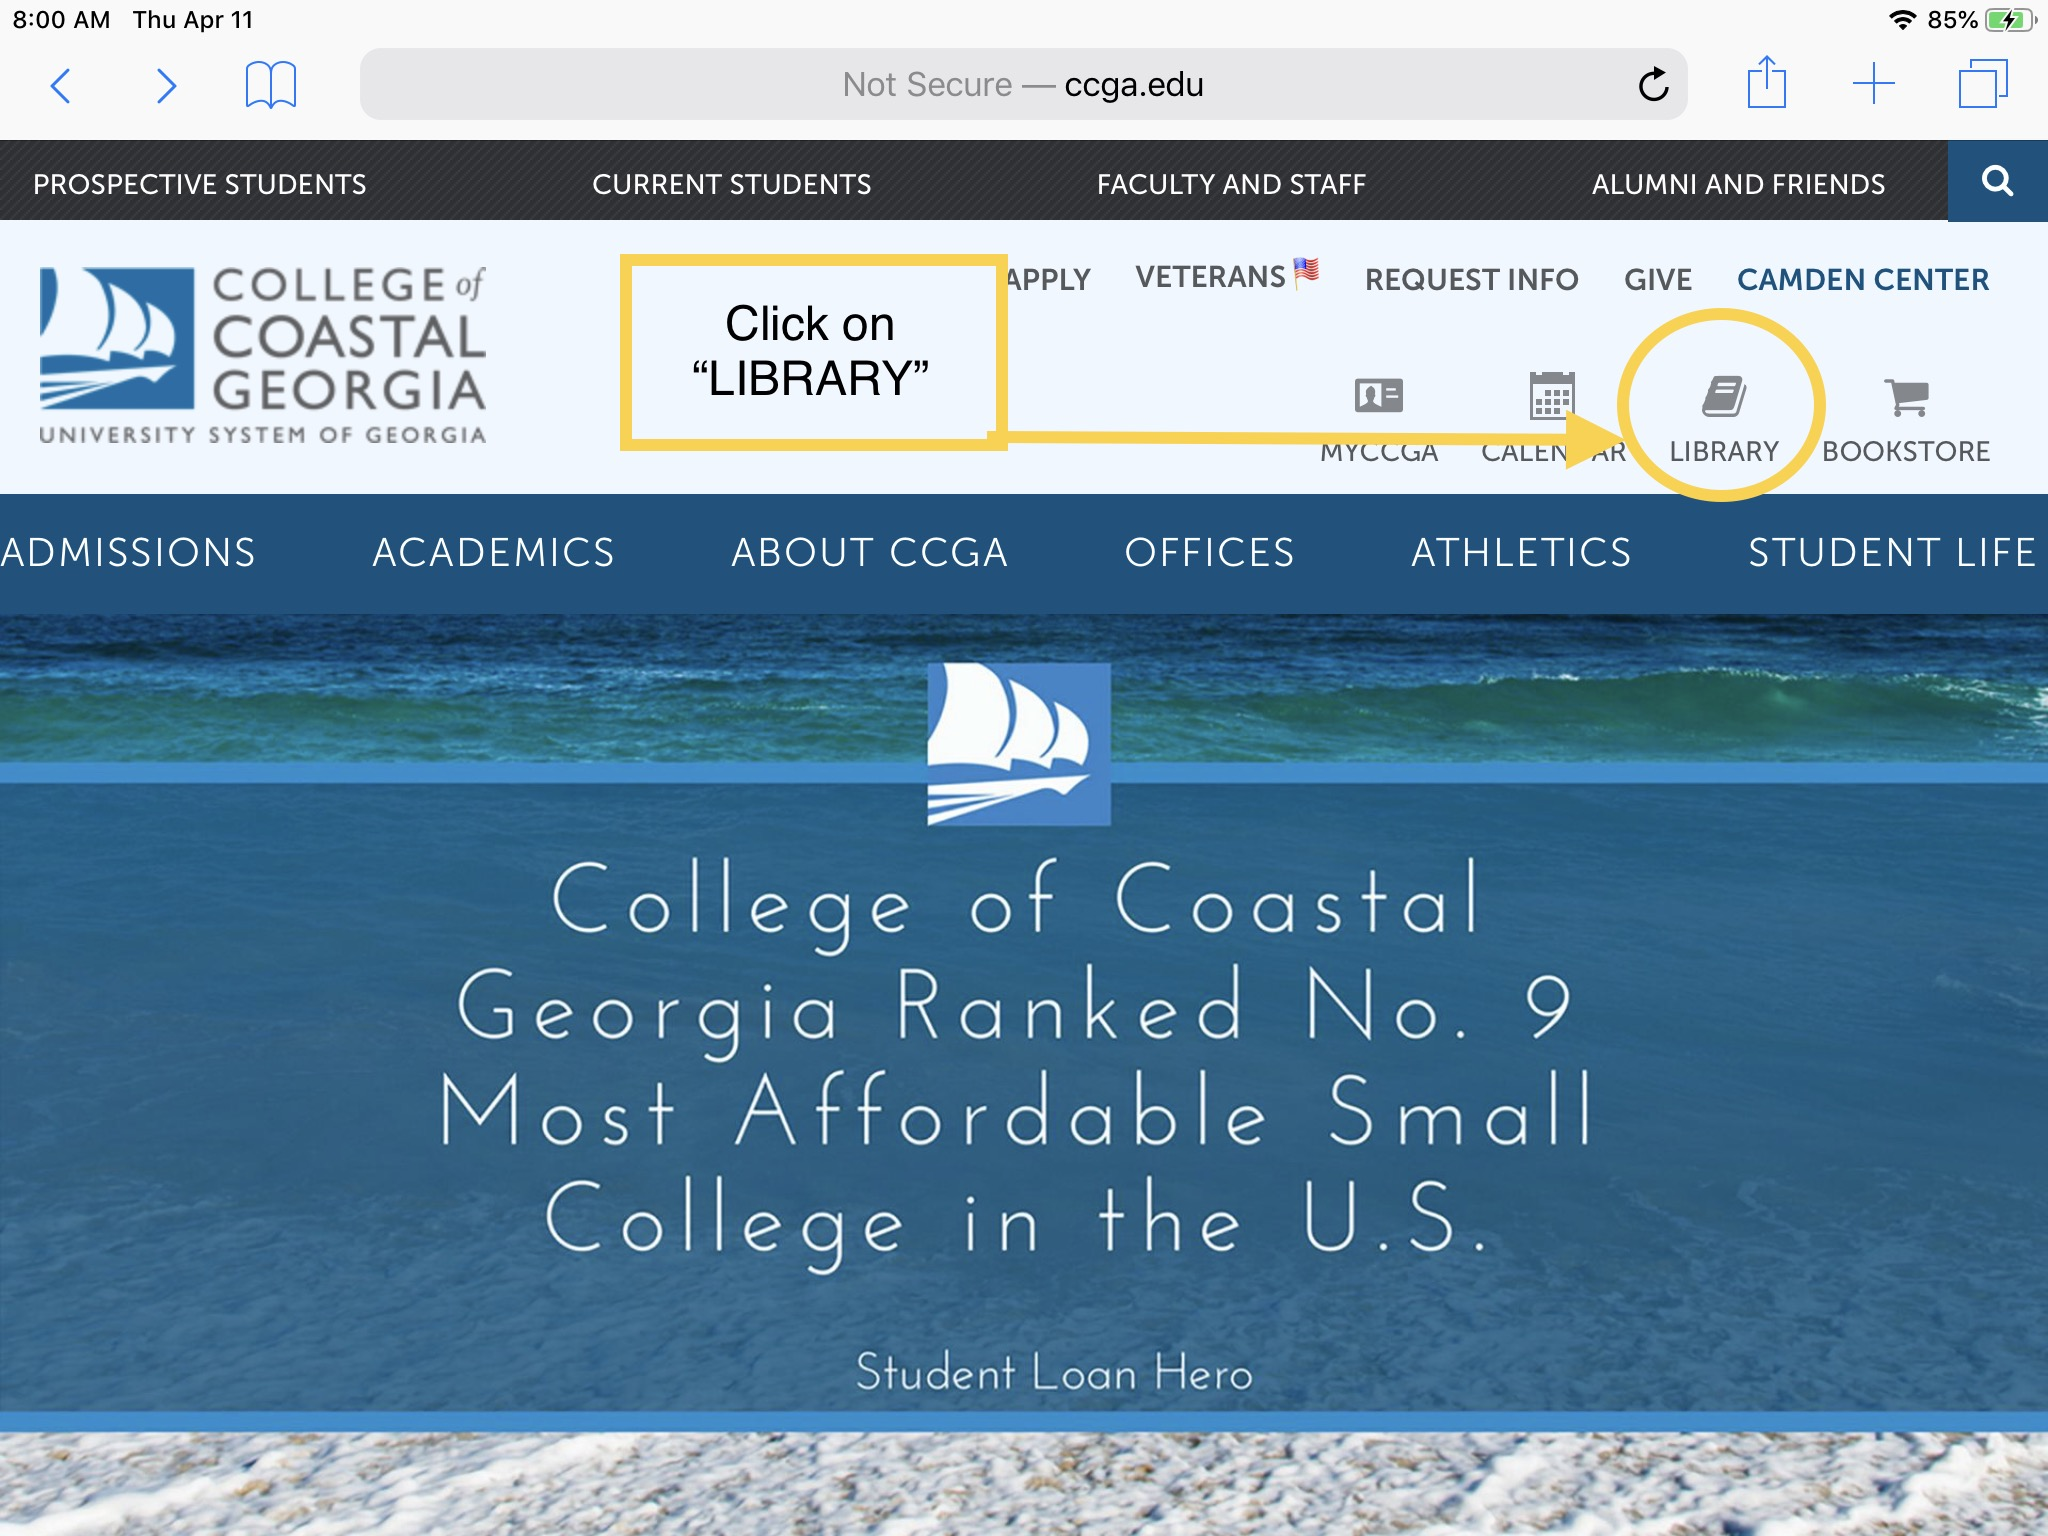 1. From the college homepage (www.ccga.edu), click on